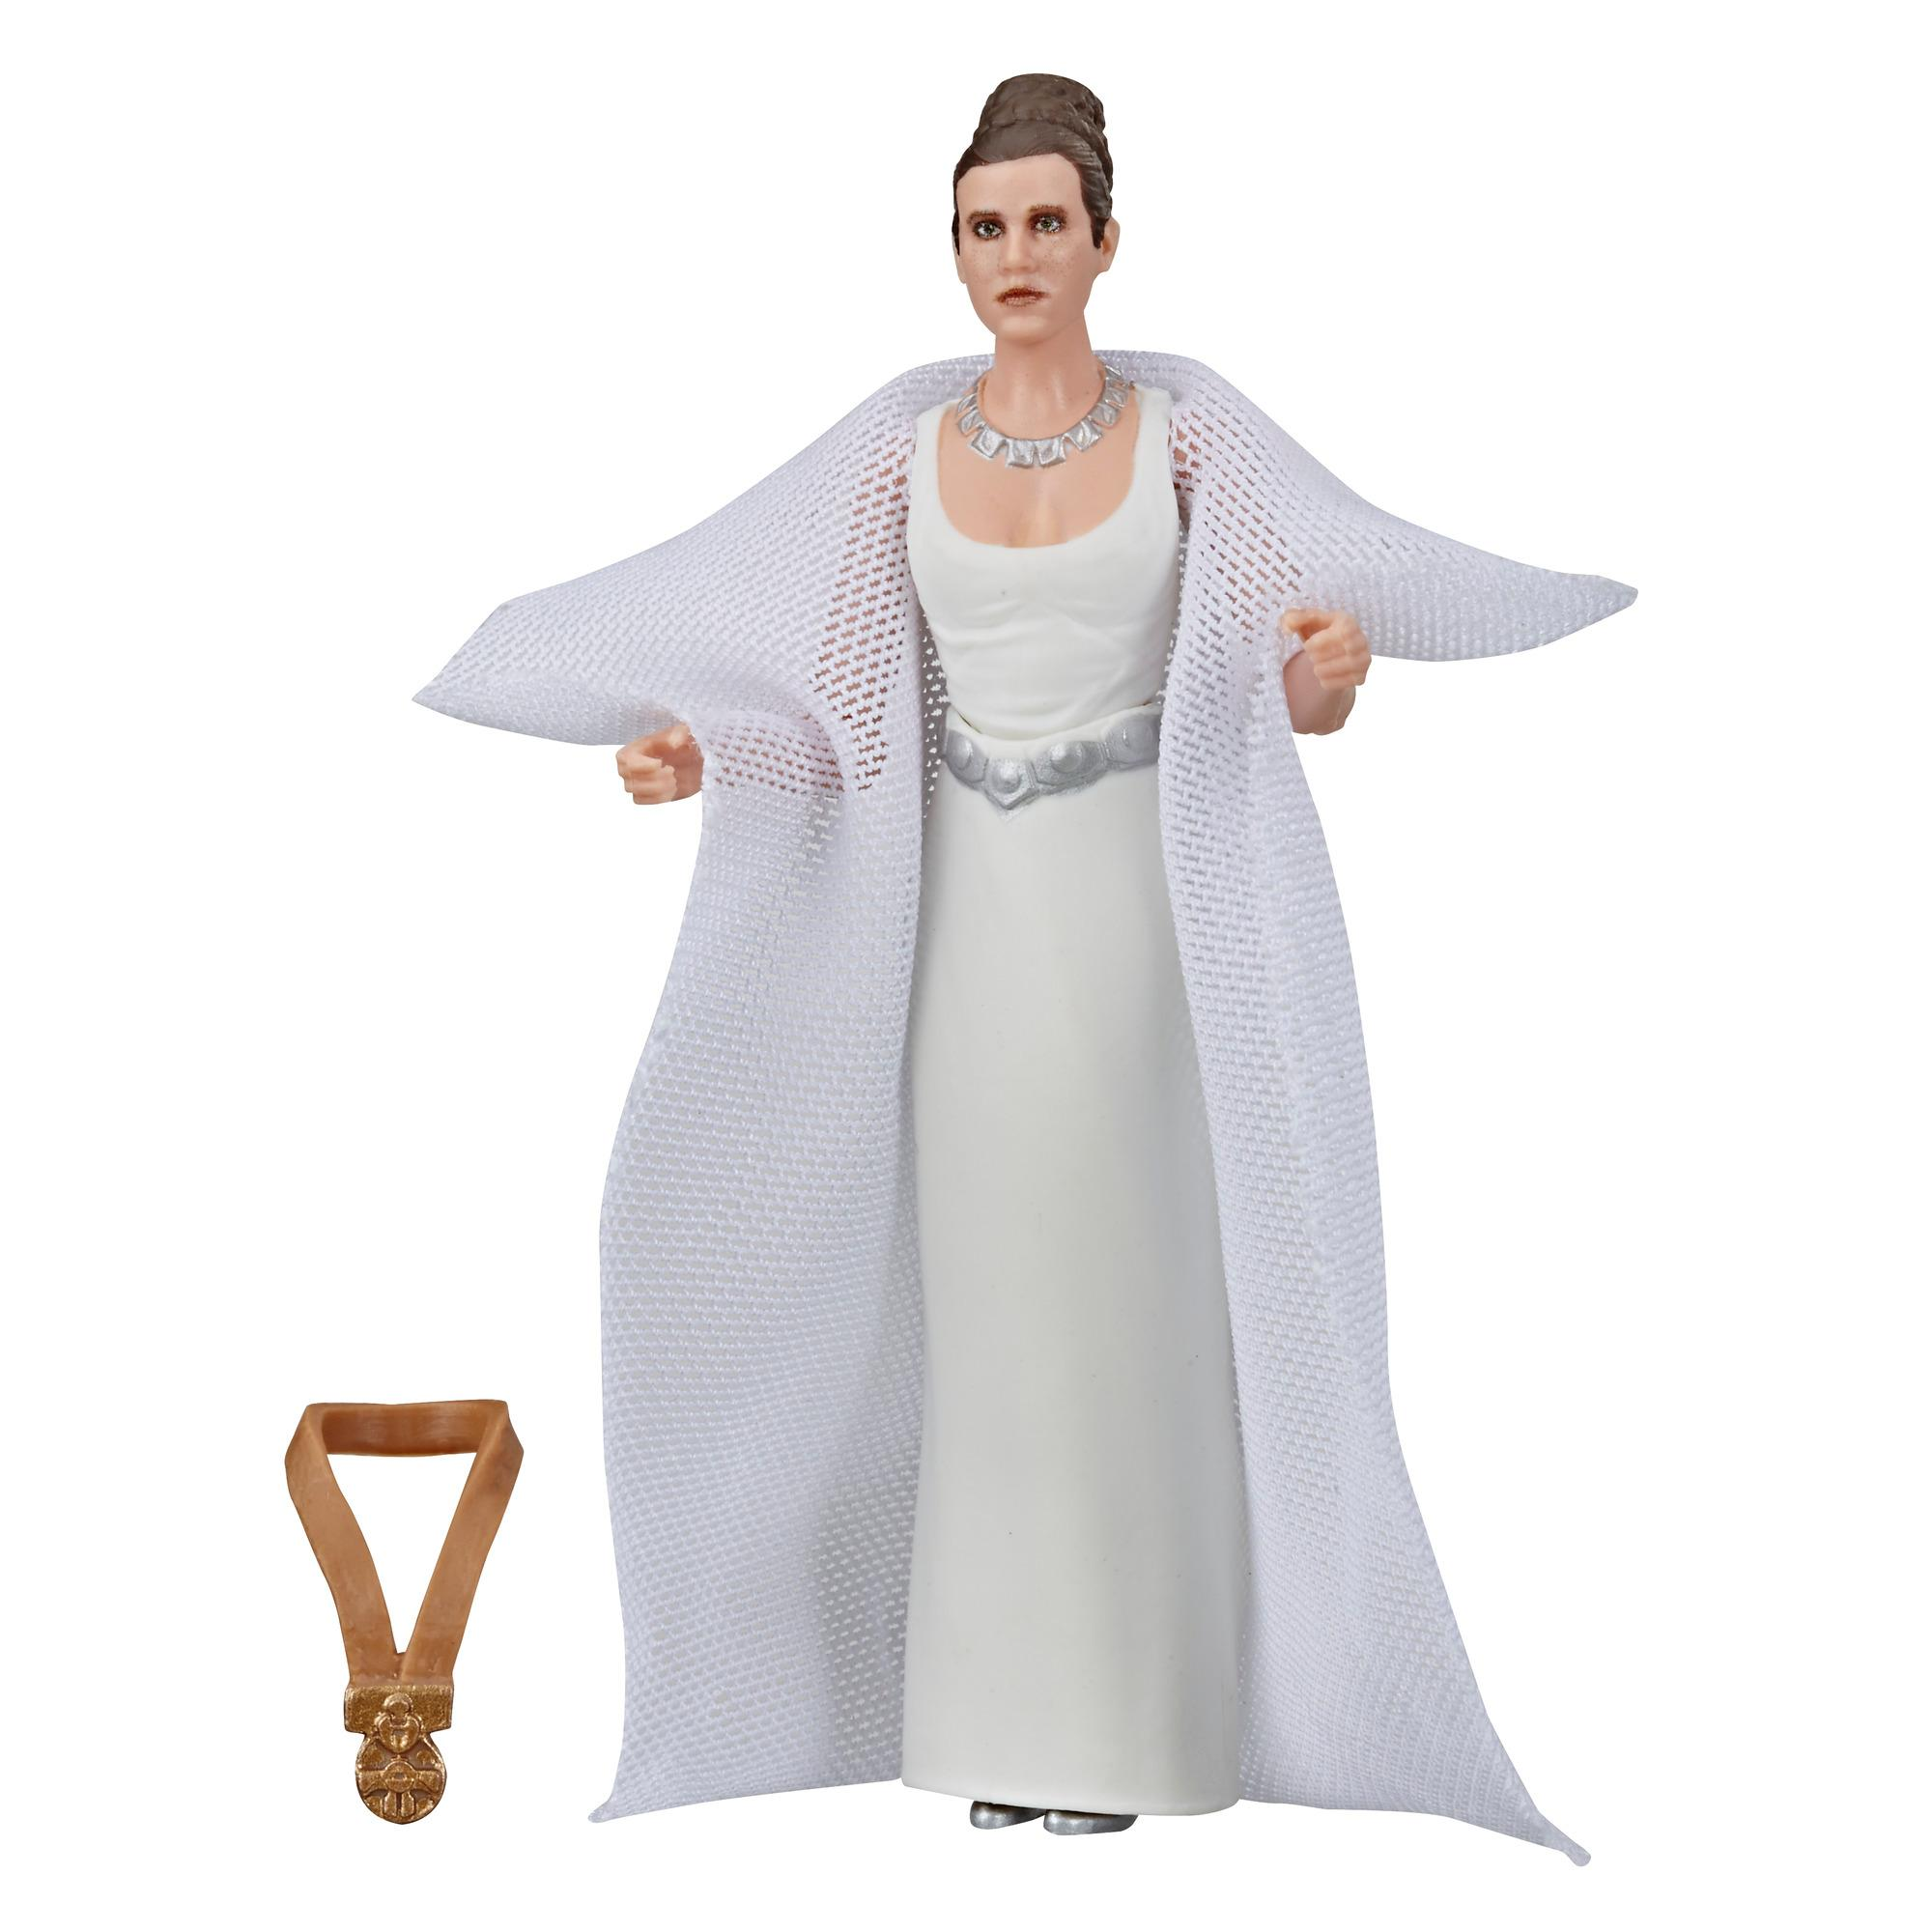 Star Wars Vintage Collection Prenses Leia Organa (Yavin) Figür